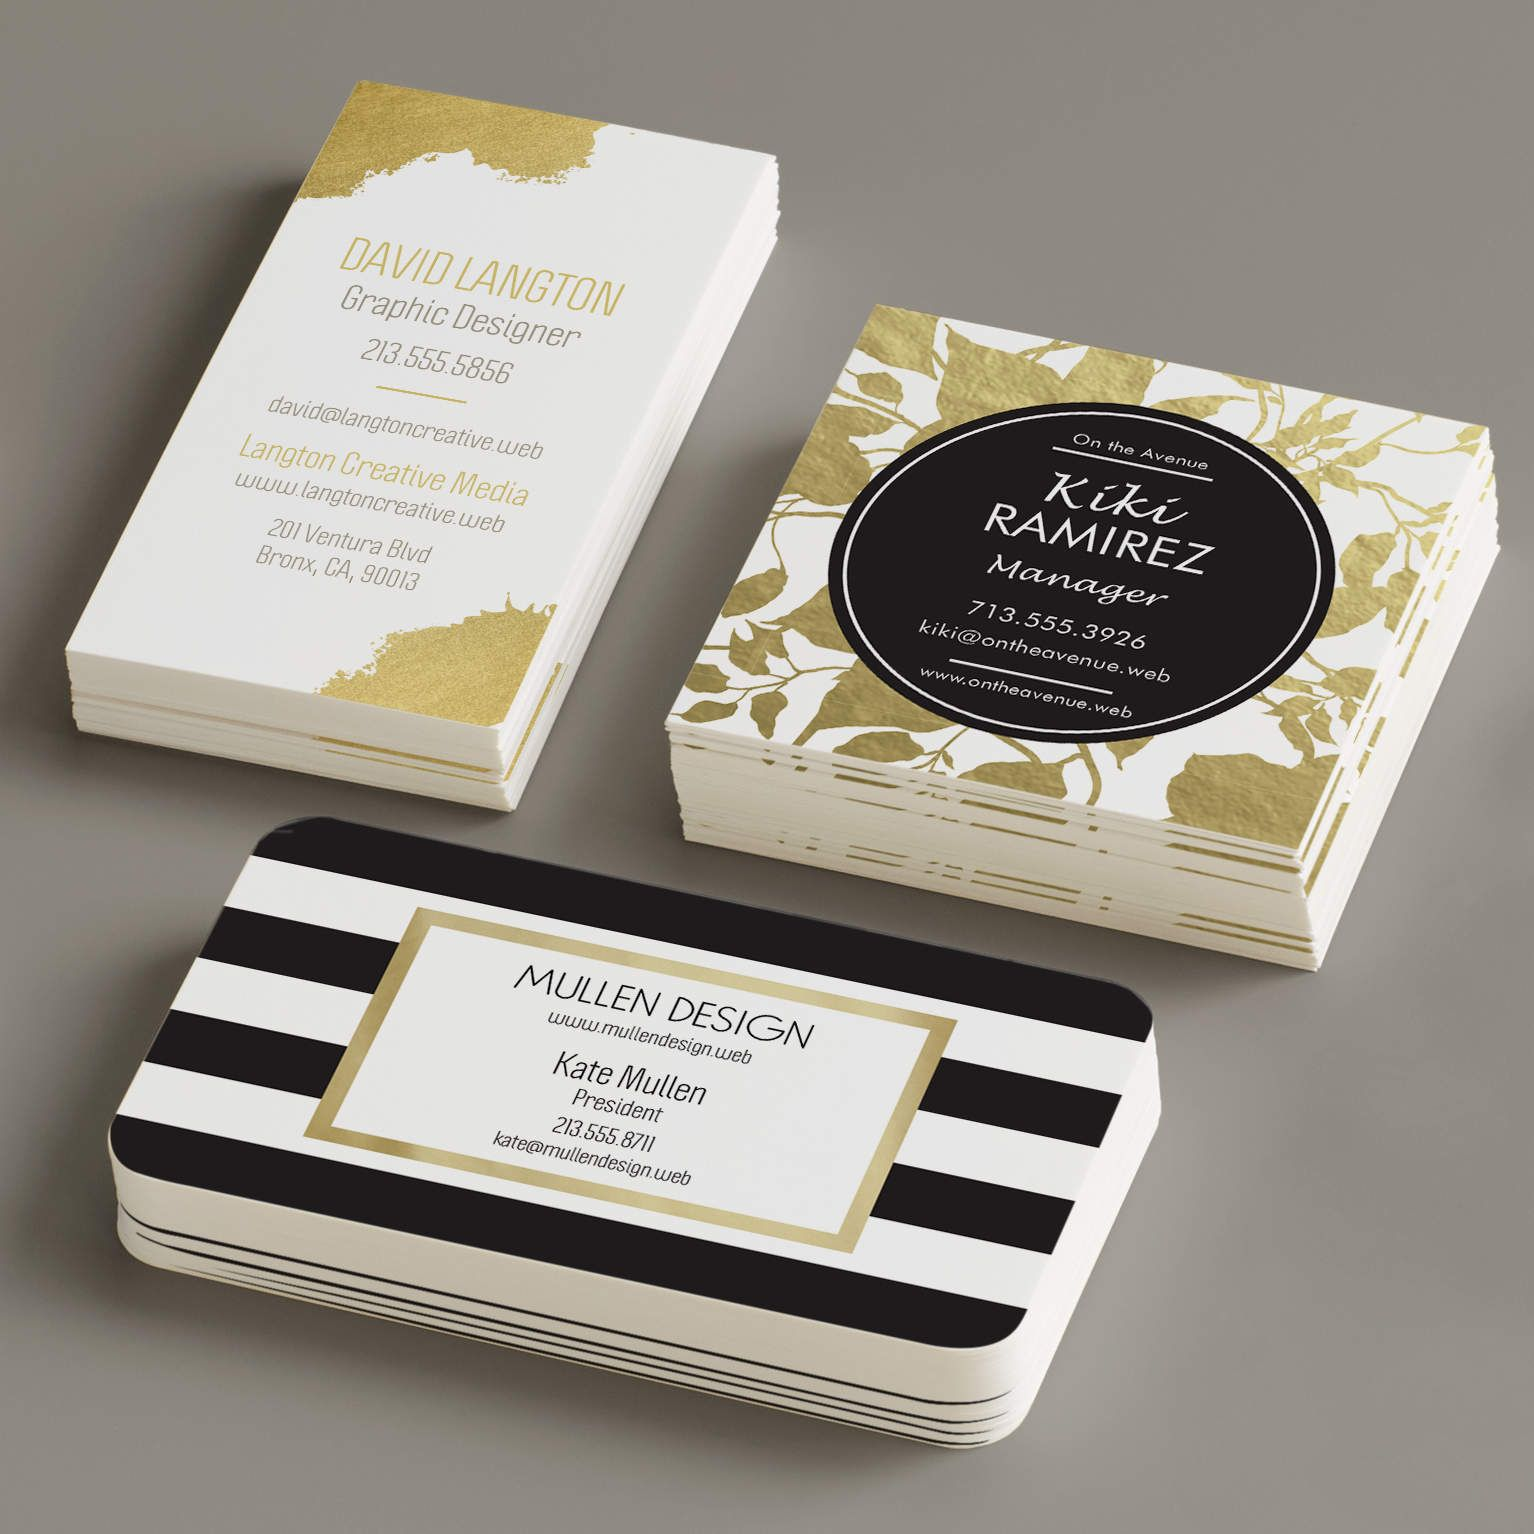 Where Millions Turn For Business Cards Websites And More Cool Business Cards Business Card Design Plastic Business Cards